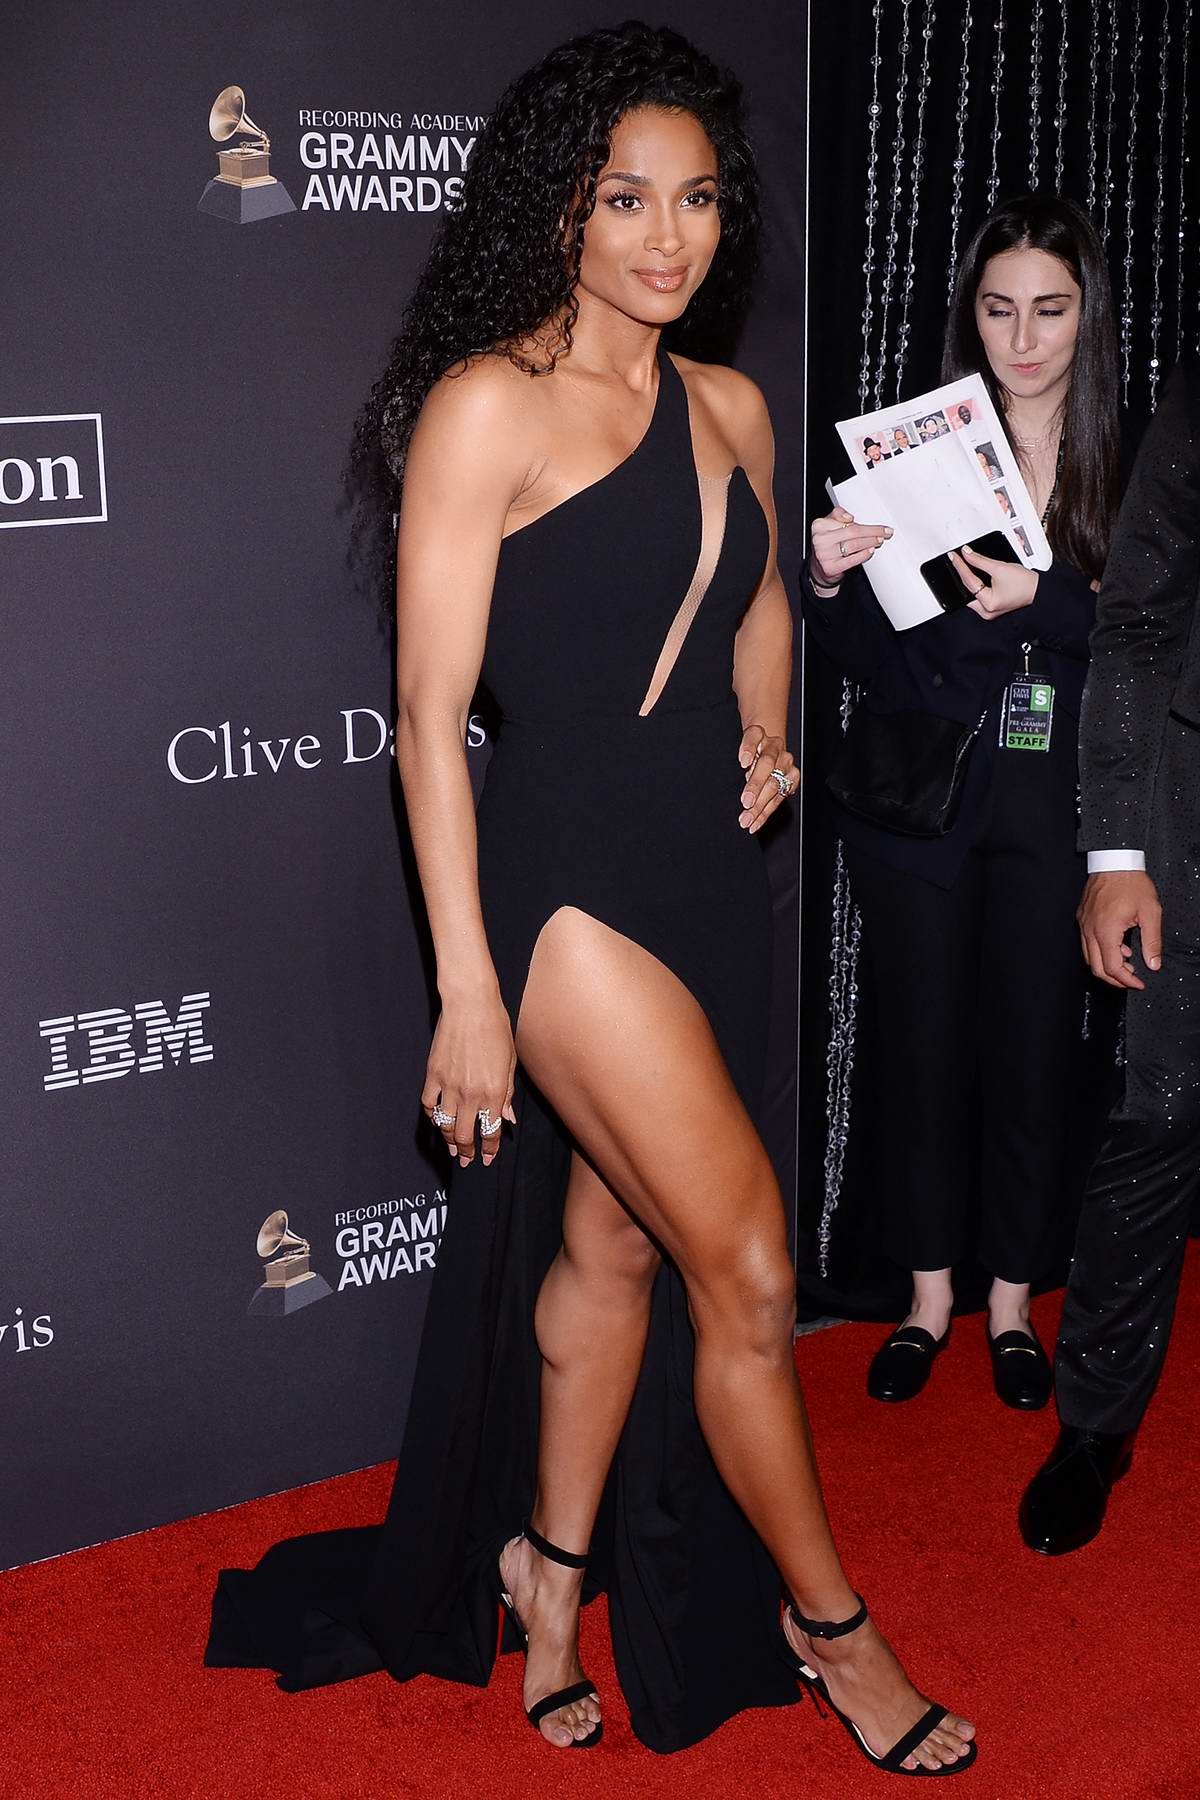 Ciara attends the Clive Davis Pre-Grammy Gala and Salute to Industry Icons held at The Beverly Hilton in Los Angeles